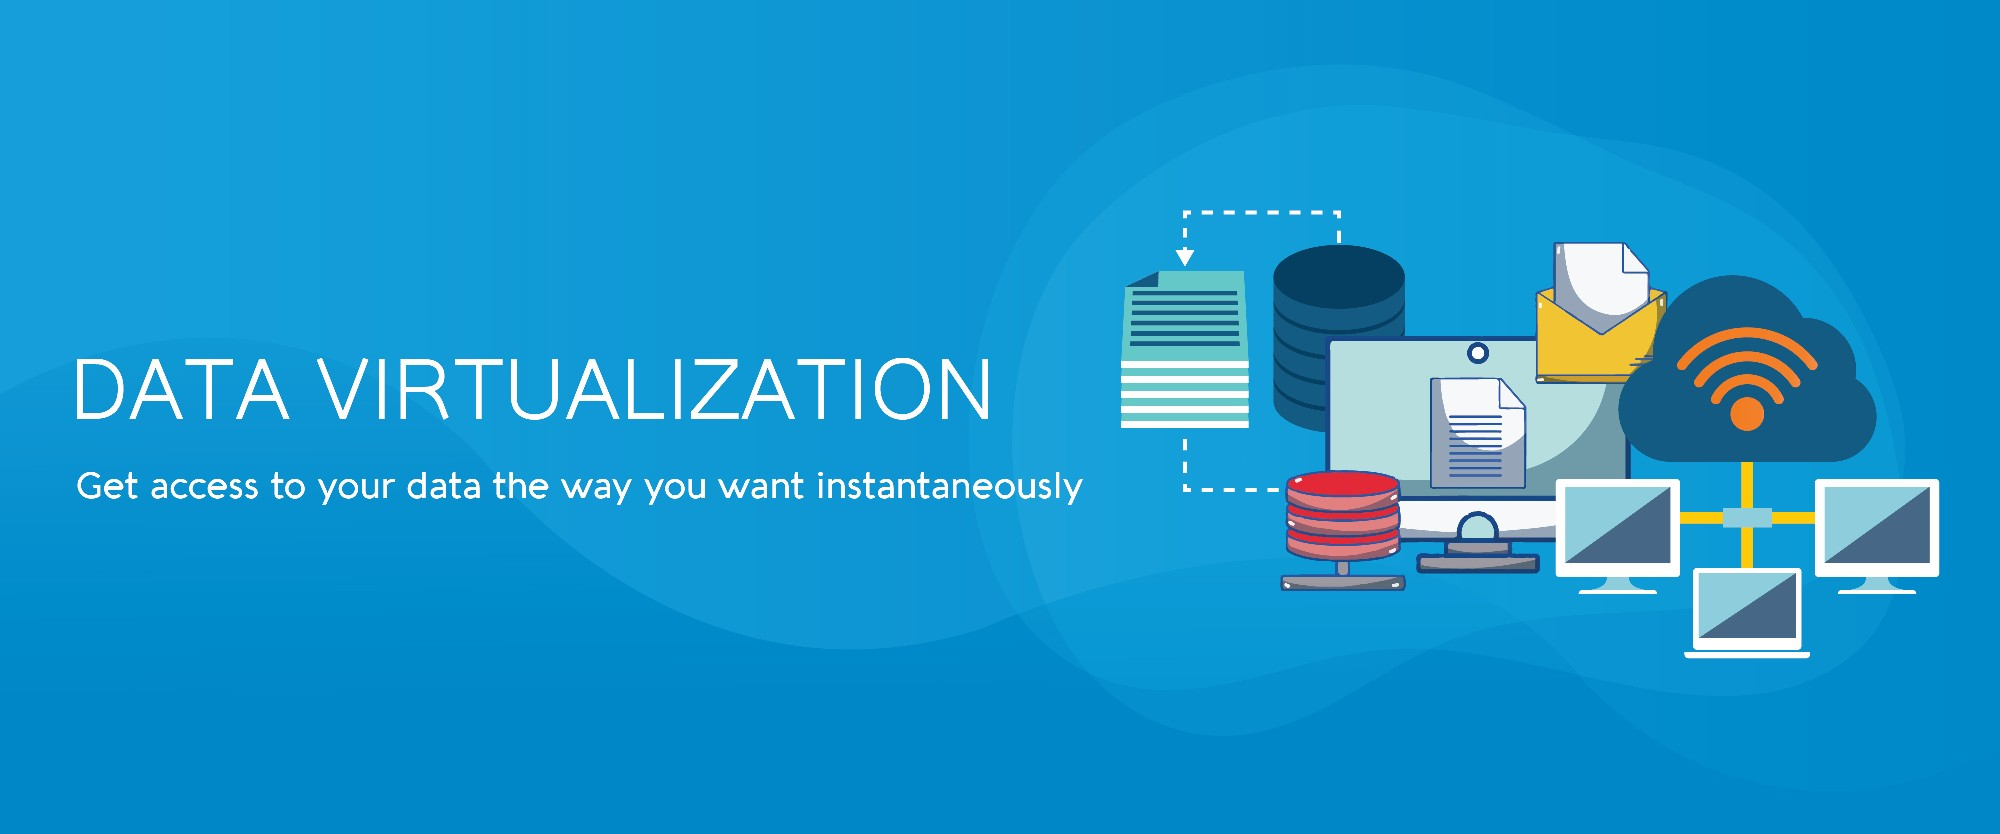 5.Data Virtualization-01